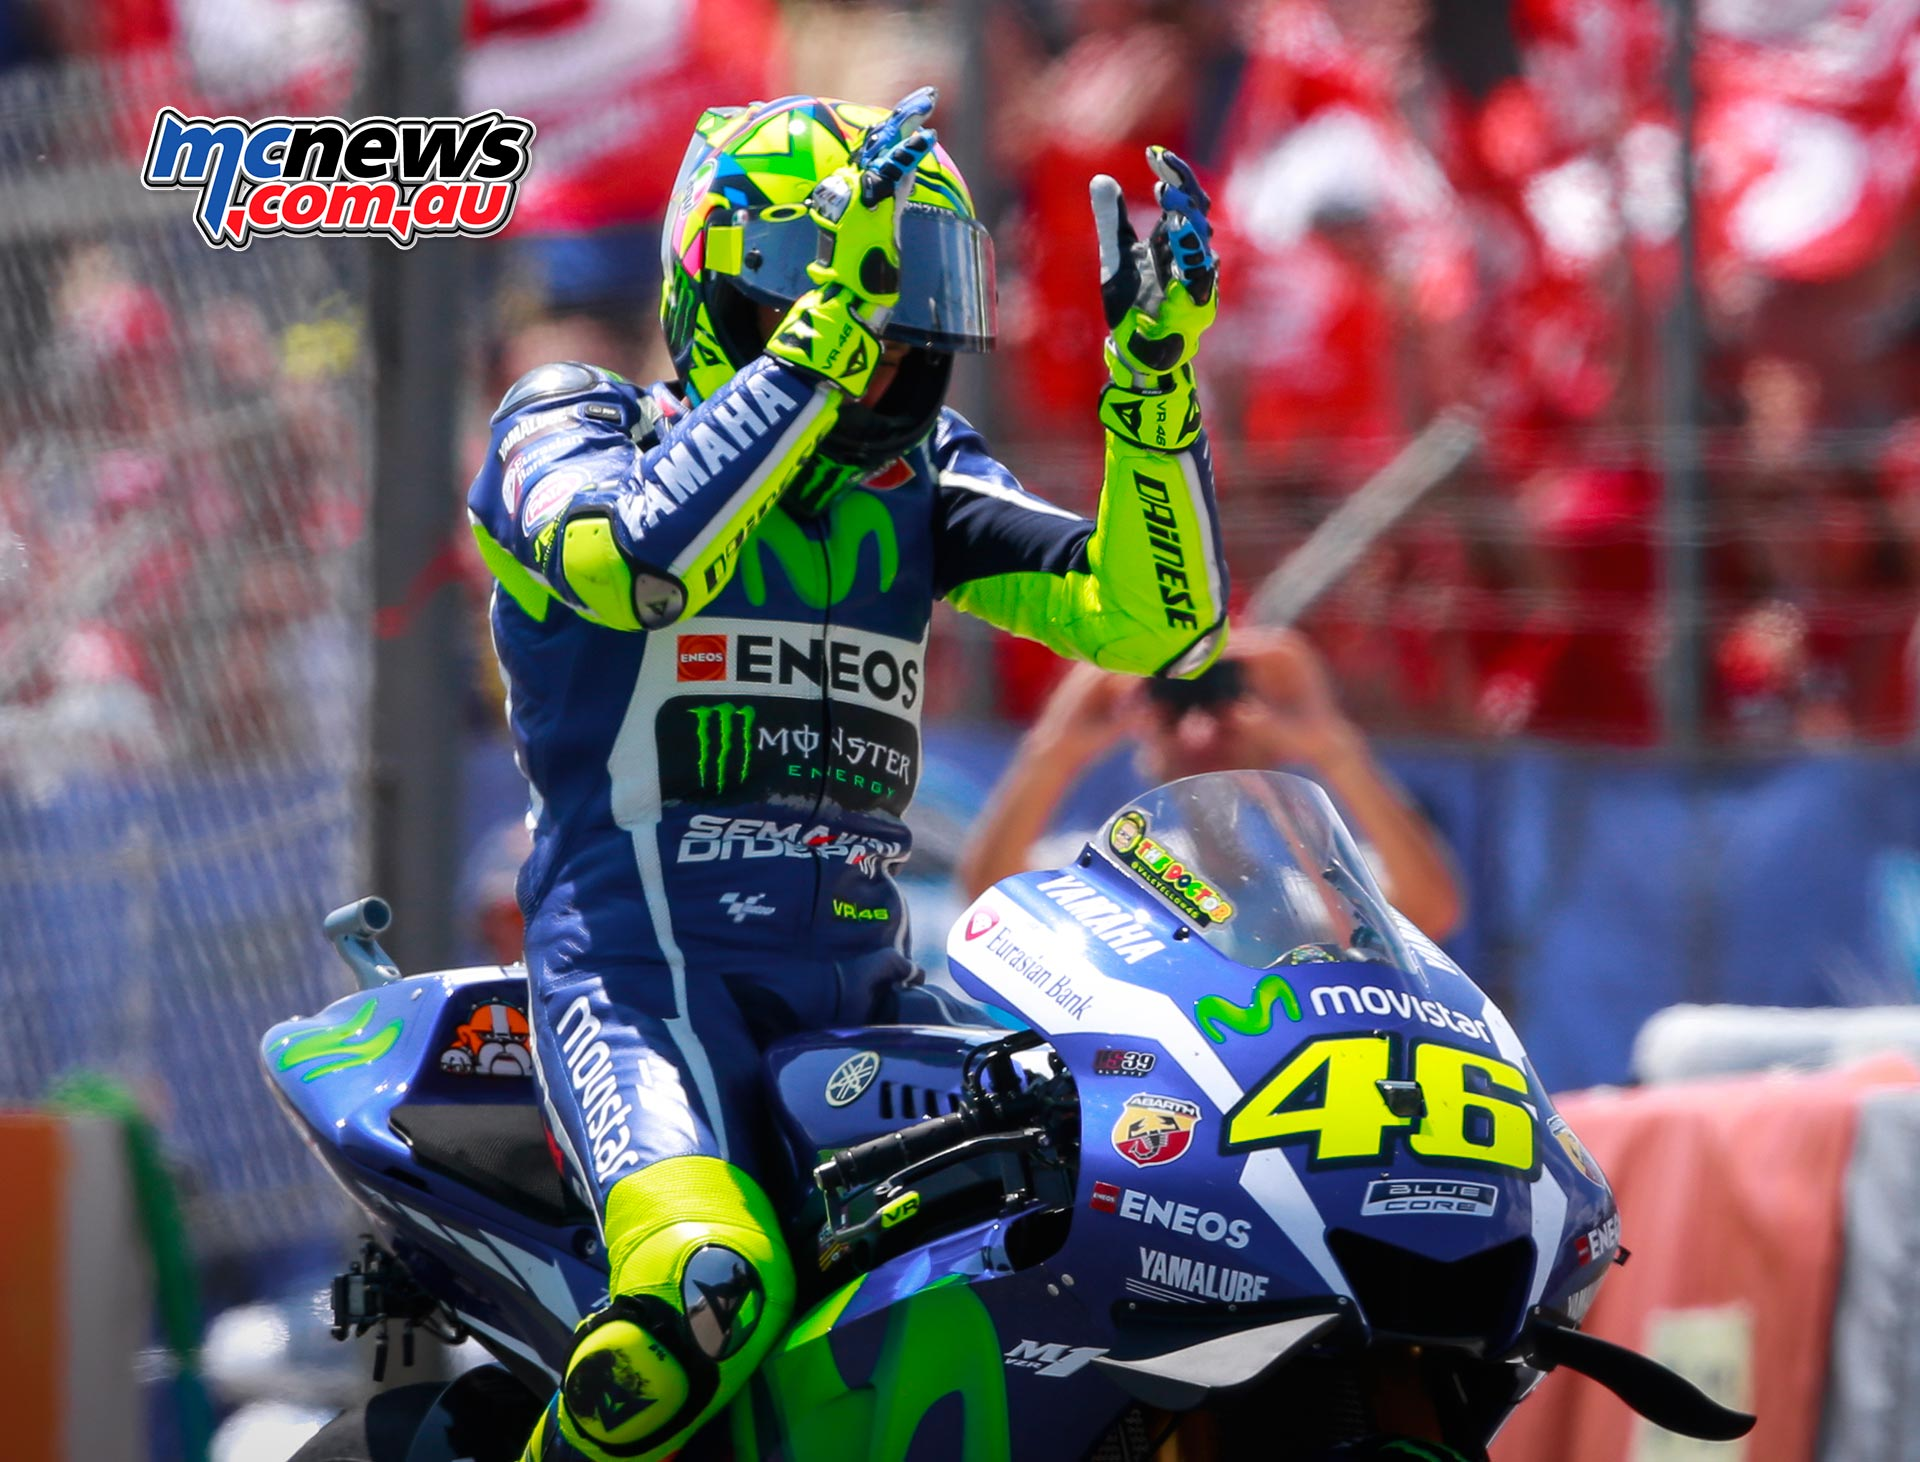 Rossi wins Catalunya as Lorenzo punted | MCNews.com.au